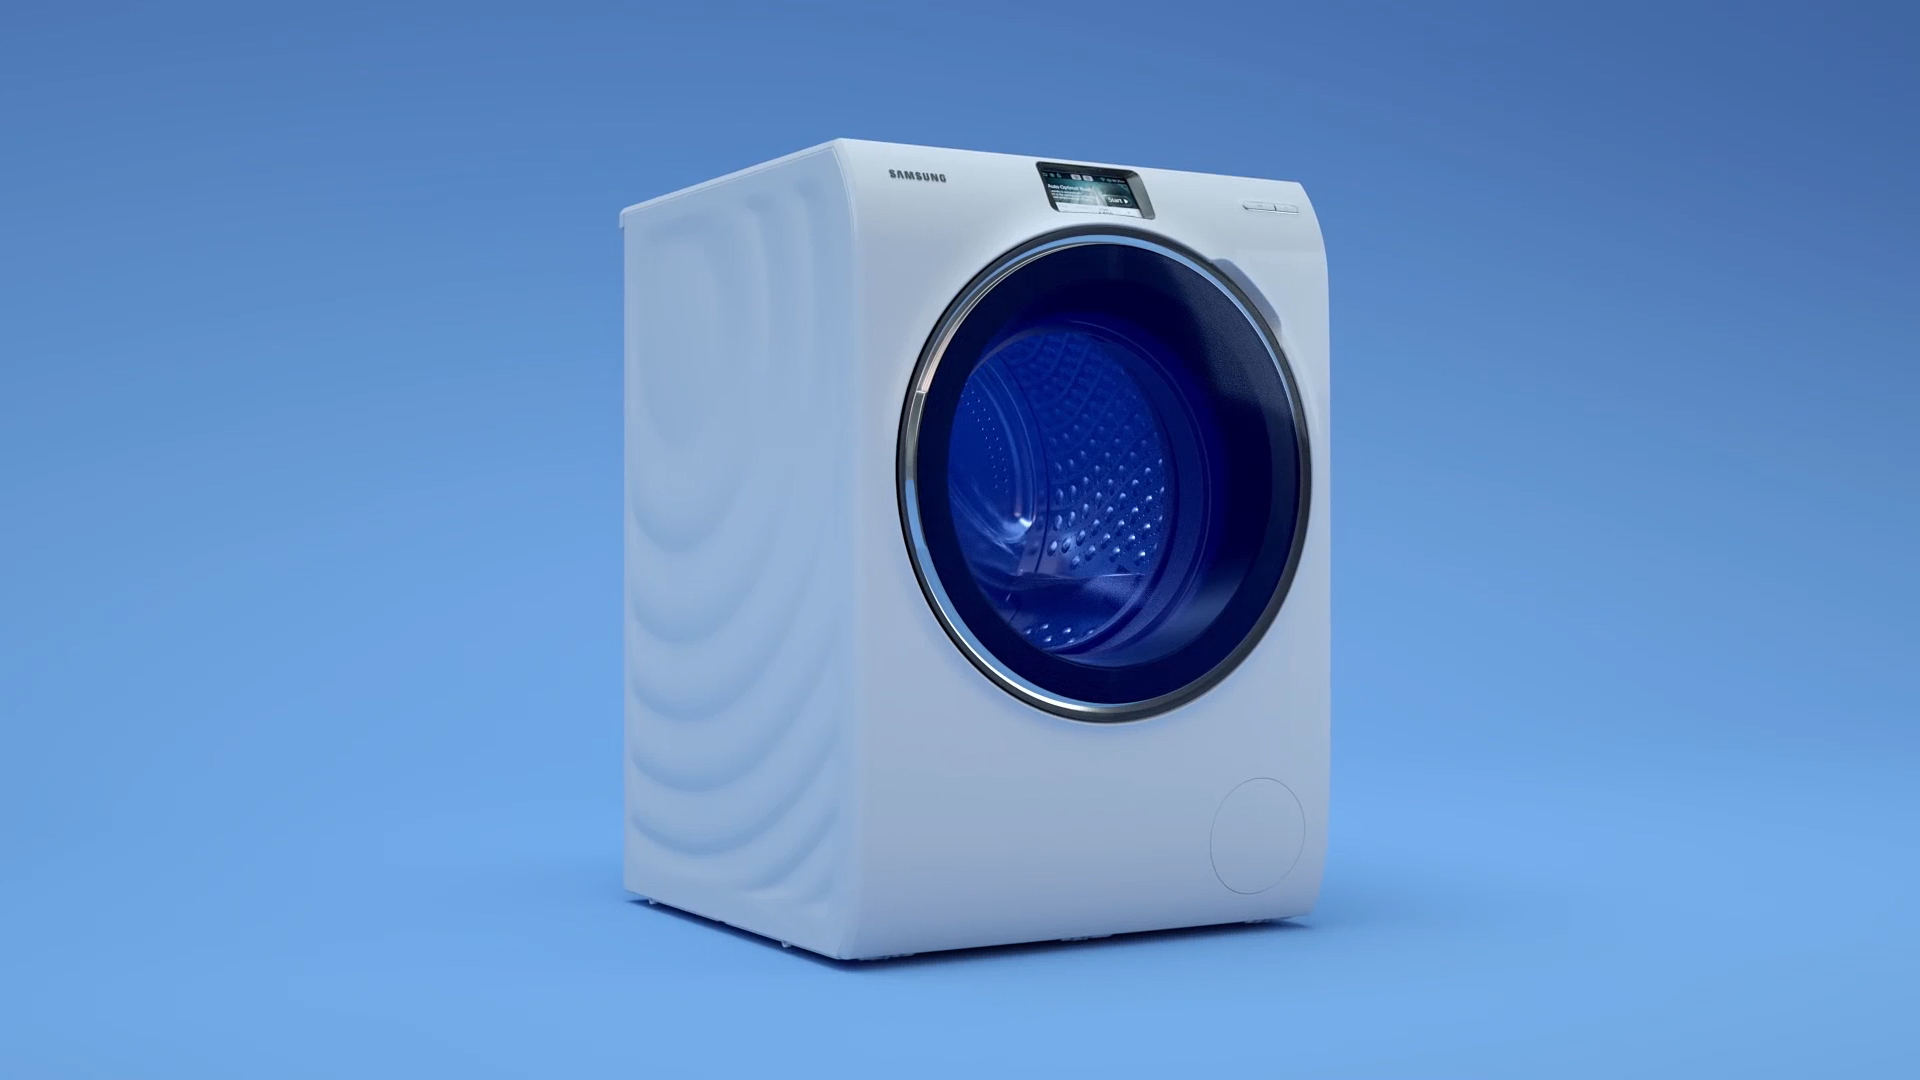 Samsung_WashingMachine_WW9000.jpg